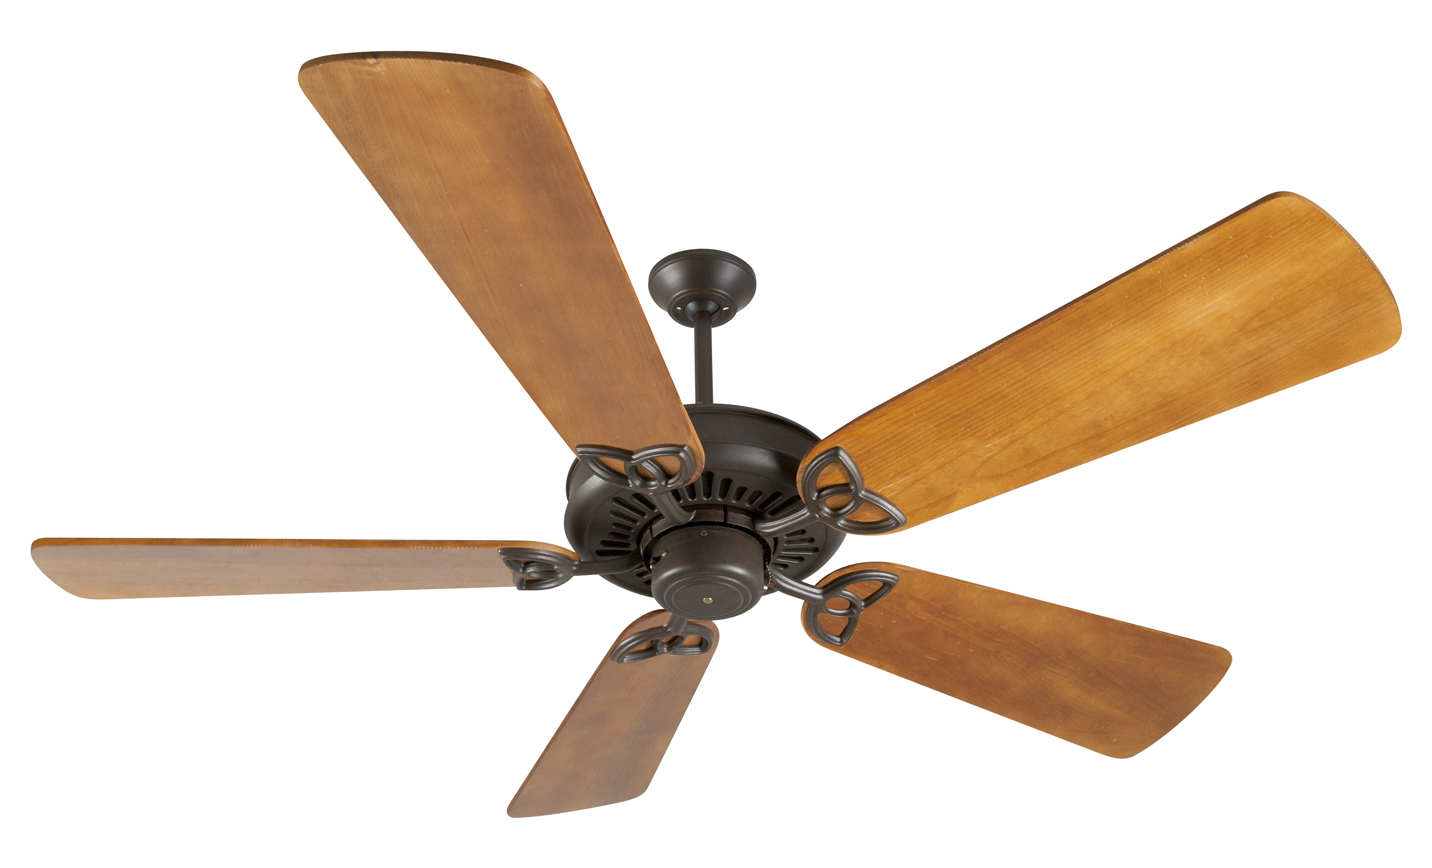 Distressed Wood Ceiling Fan Craftmade Aged Bronze American Tradition Ceiling Fan With